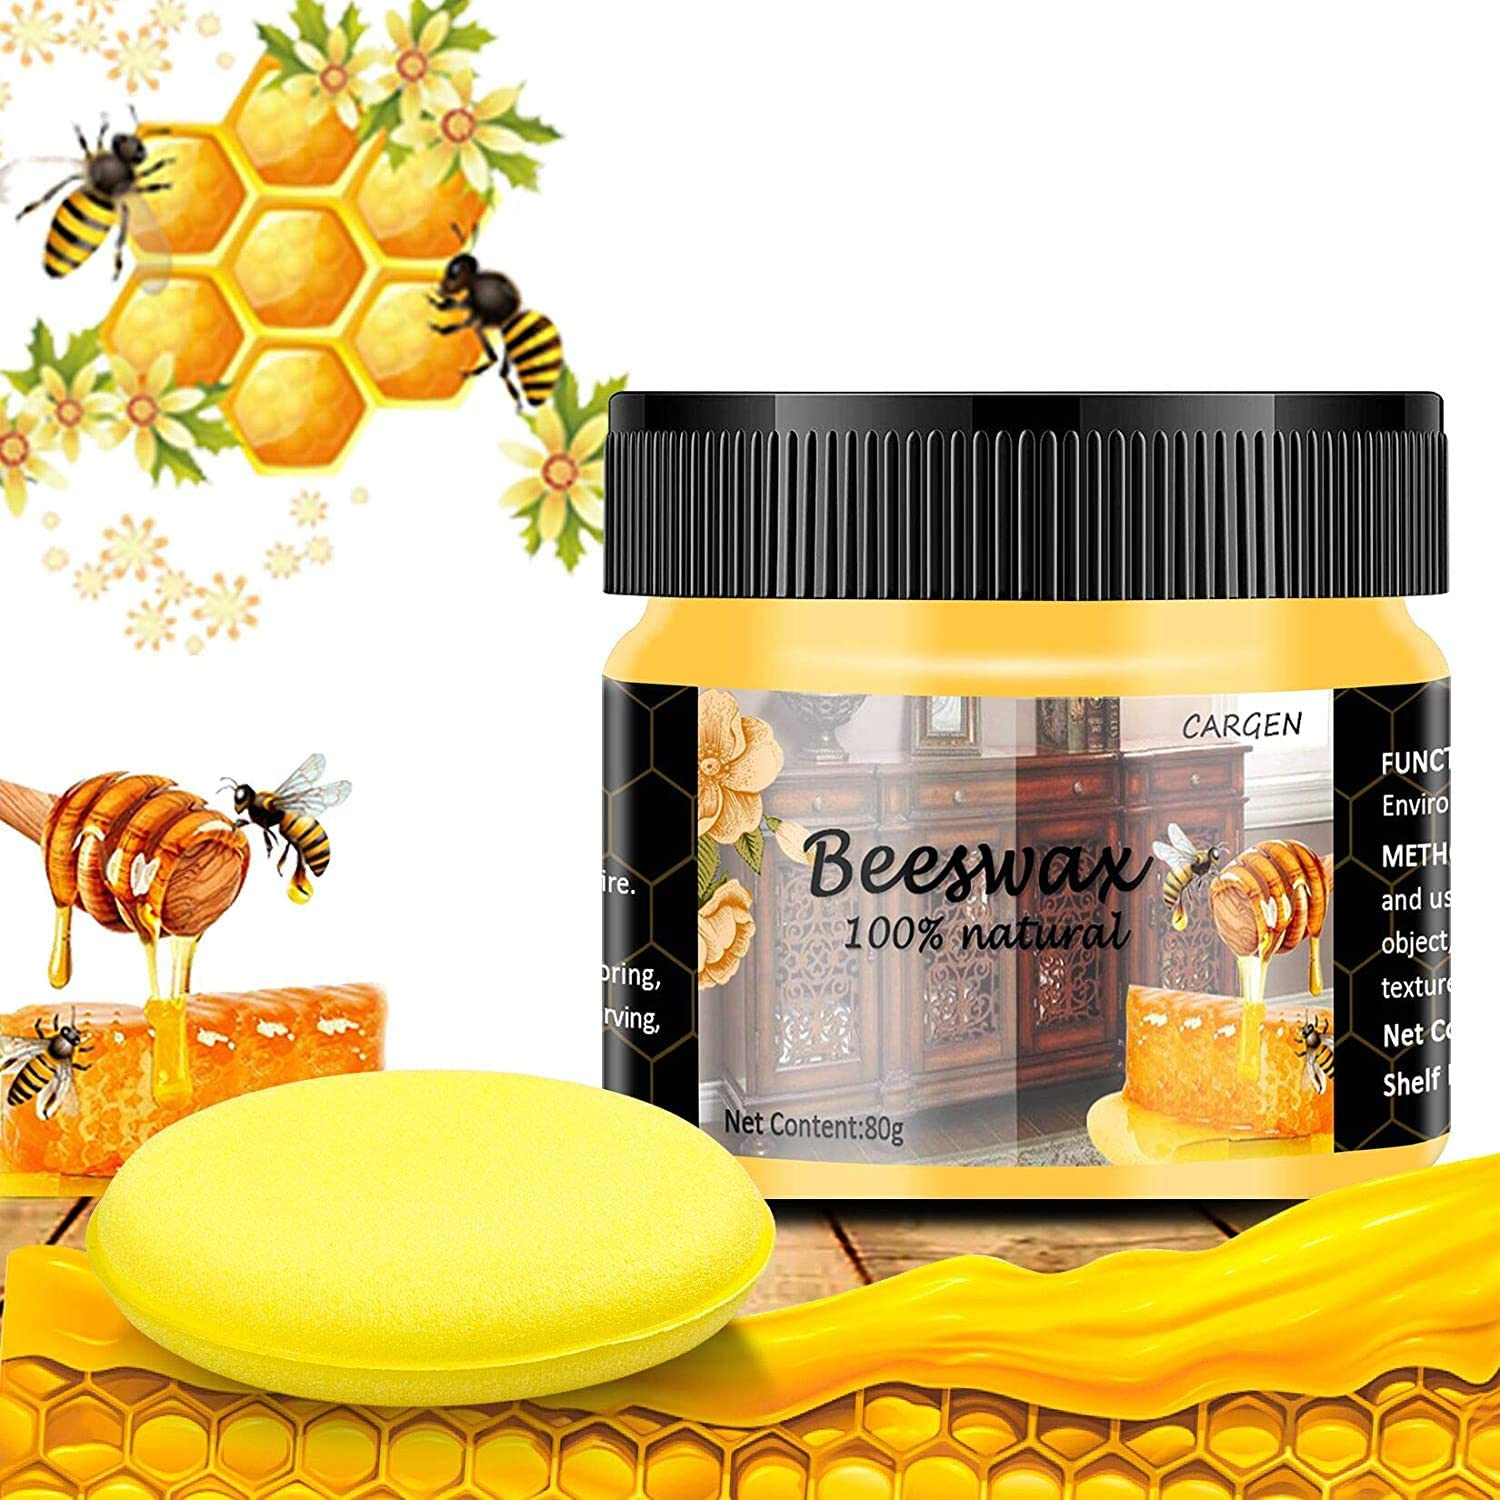 CARGEN Beeswax Furniture Polish, Wood Seasoning Beeswax for Furniture Wood Cleaner and Polish for Floor Tables Chairs Cabinets for Home Furniture to Protect and Care 1pcs Wood Wax and Sponge